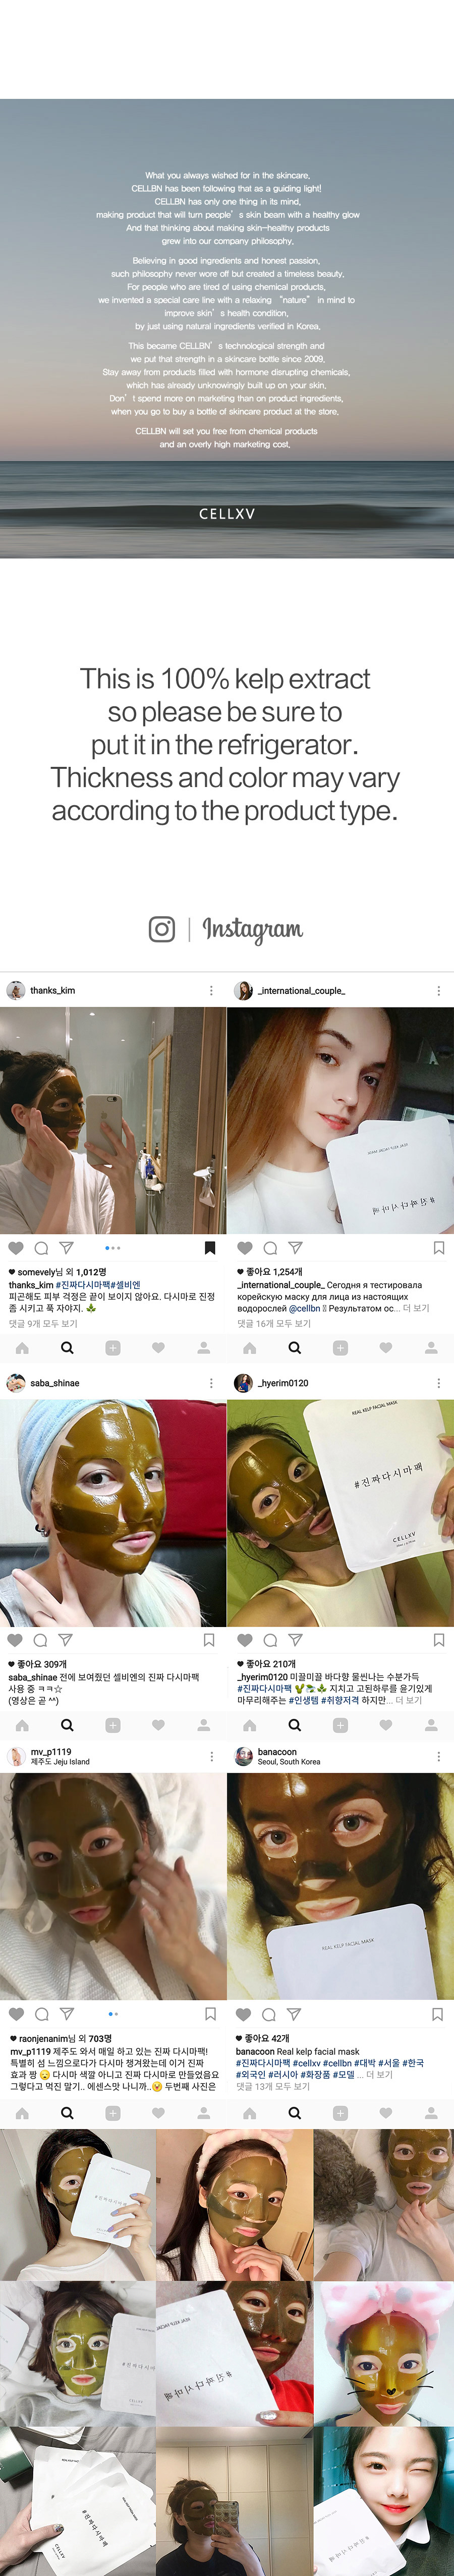 Selling Skin Care